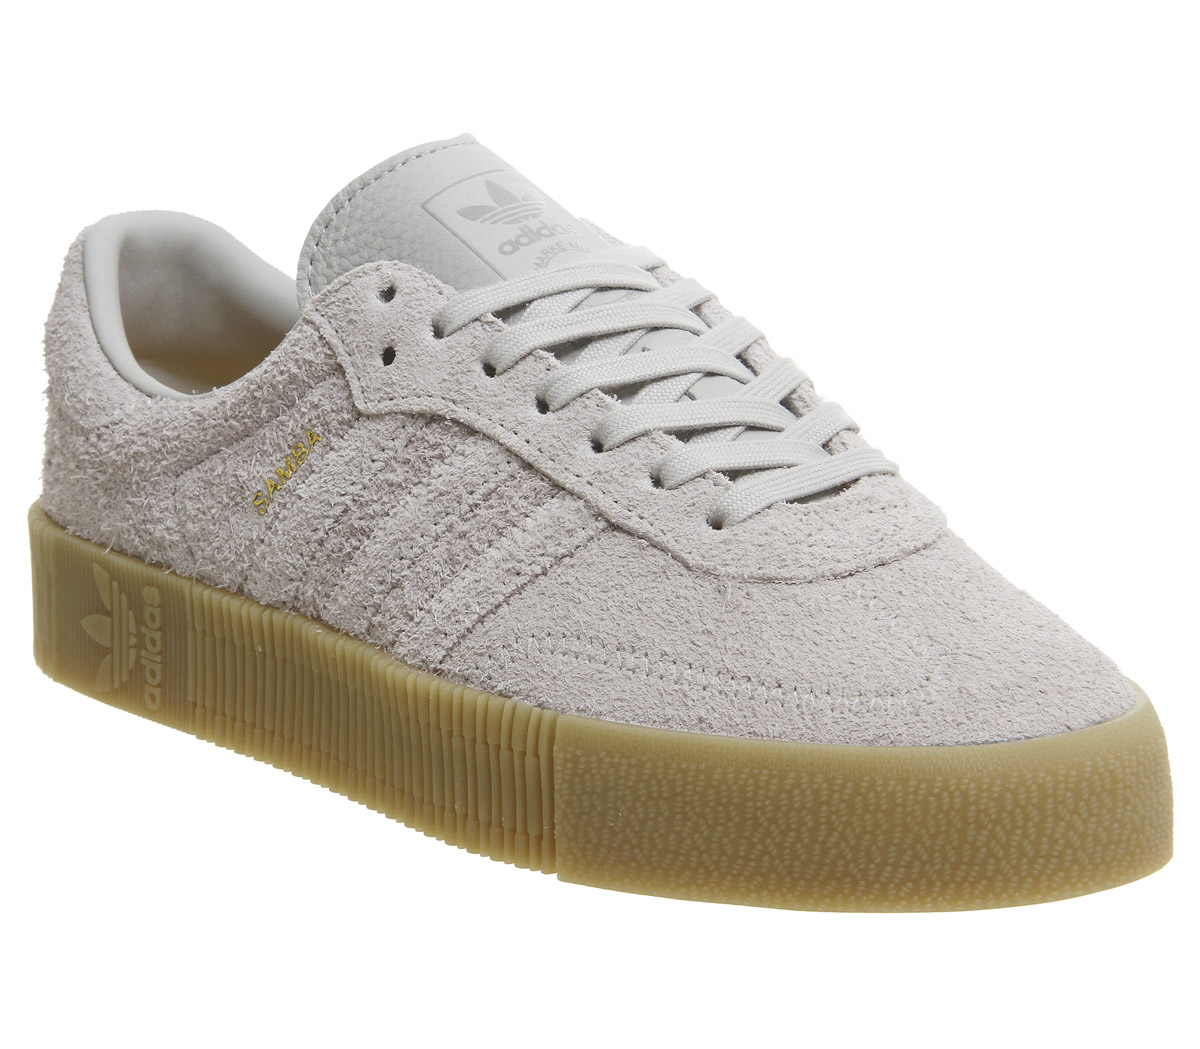 detailed look 56325 eb491 Sentinel Womens Adidas Samba Rose Trainers Grey Two Trainers Shoes